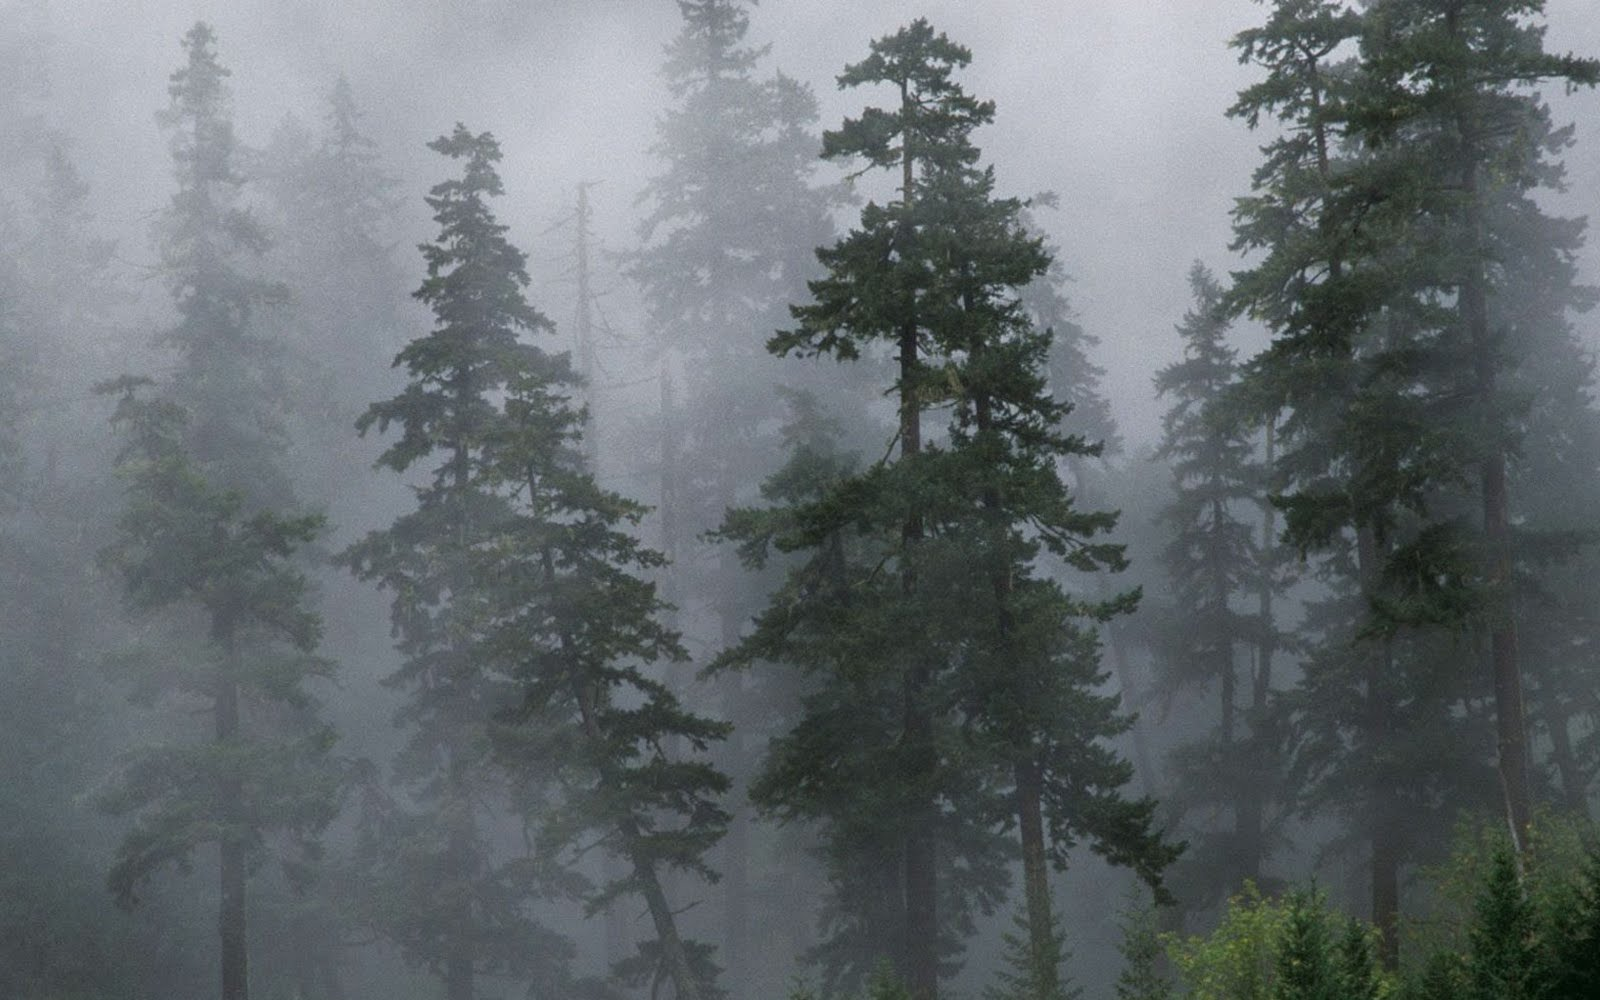 Fog at Forest wallpaper 1600x1000